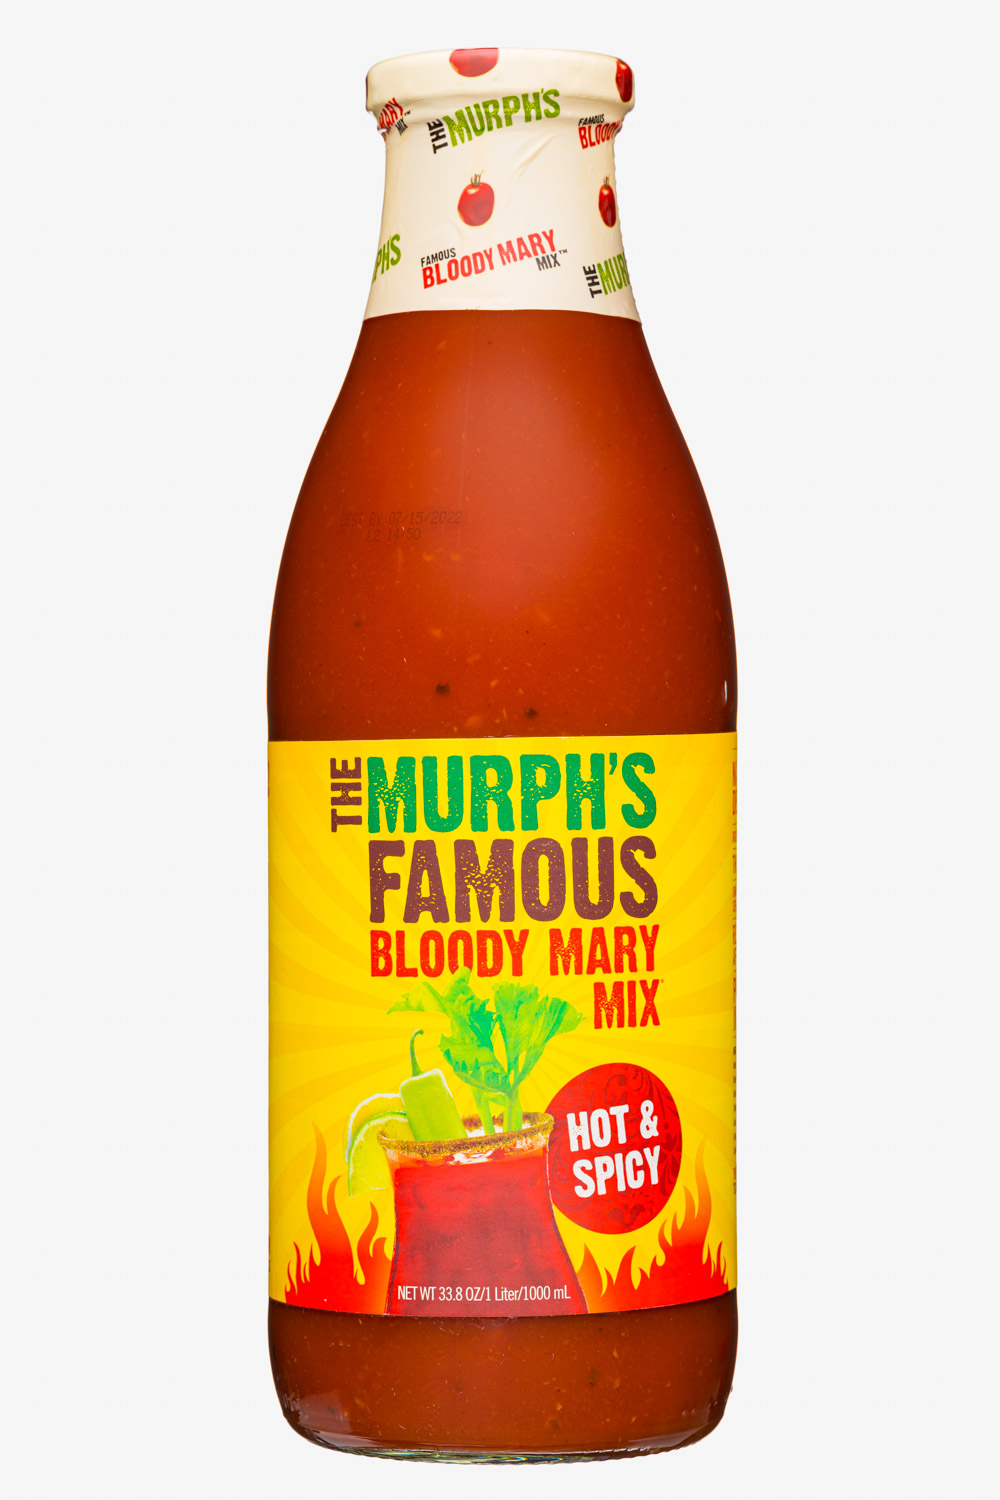 The Murph's Famous Bloody Mary Mix: TheMurphsFamous-34oz-2020-BloodyMaryMix-HotSpicy-Front